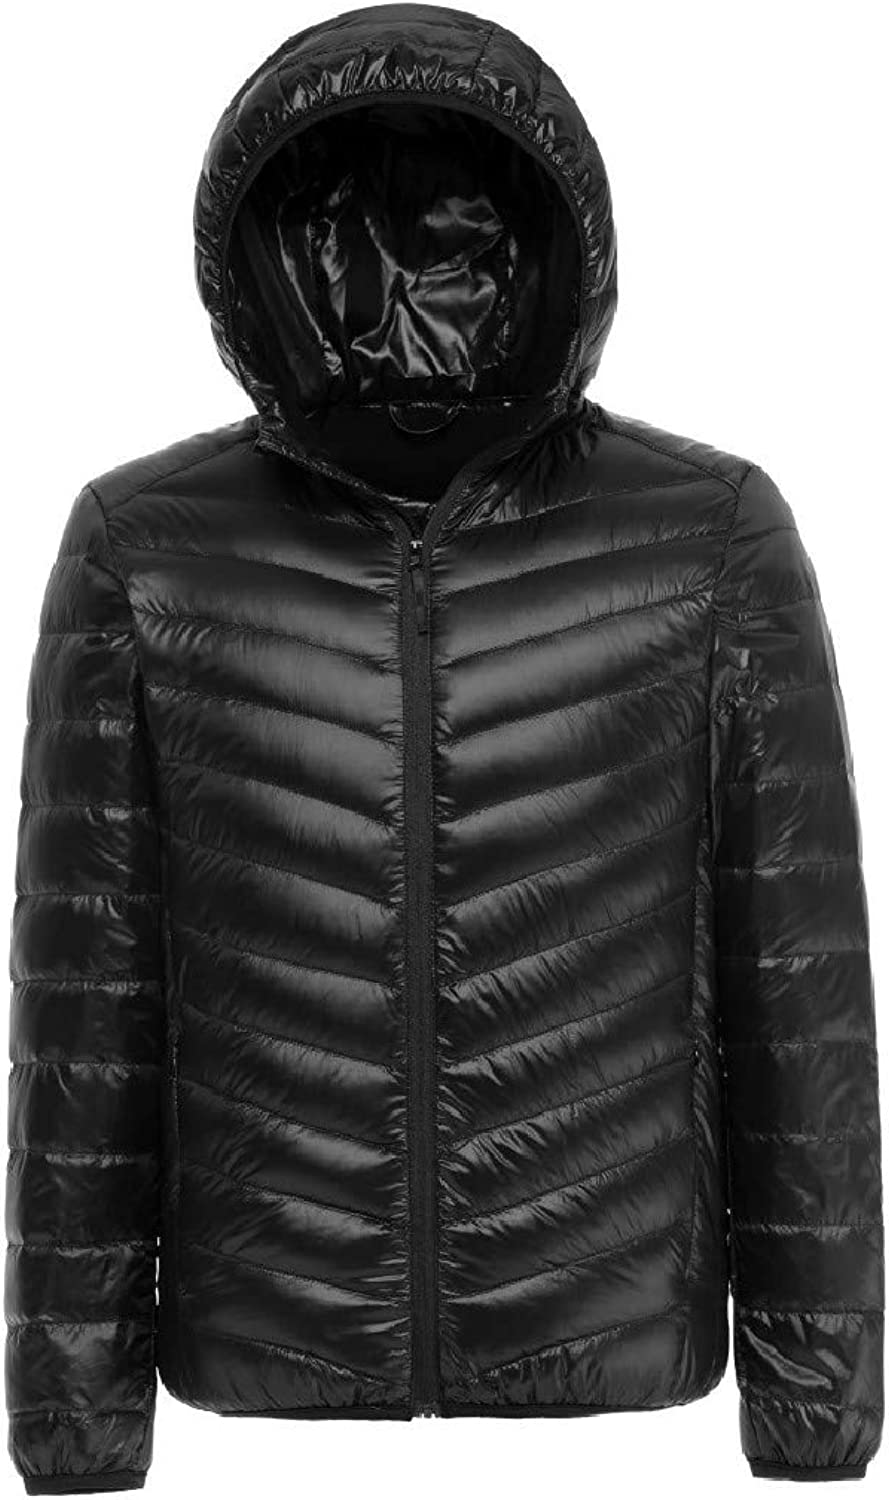 - Abetteric Mens Lightweight Winter Winter Winter Hood Short Mini Warm Down Jacket Overcoat 5da1f1